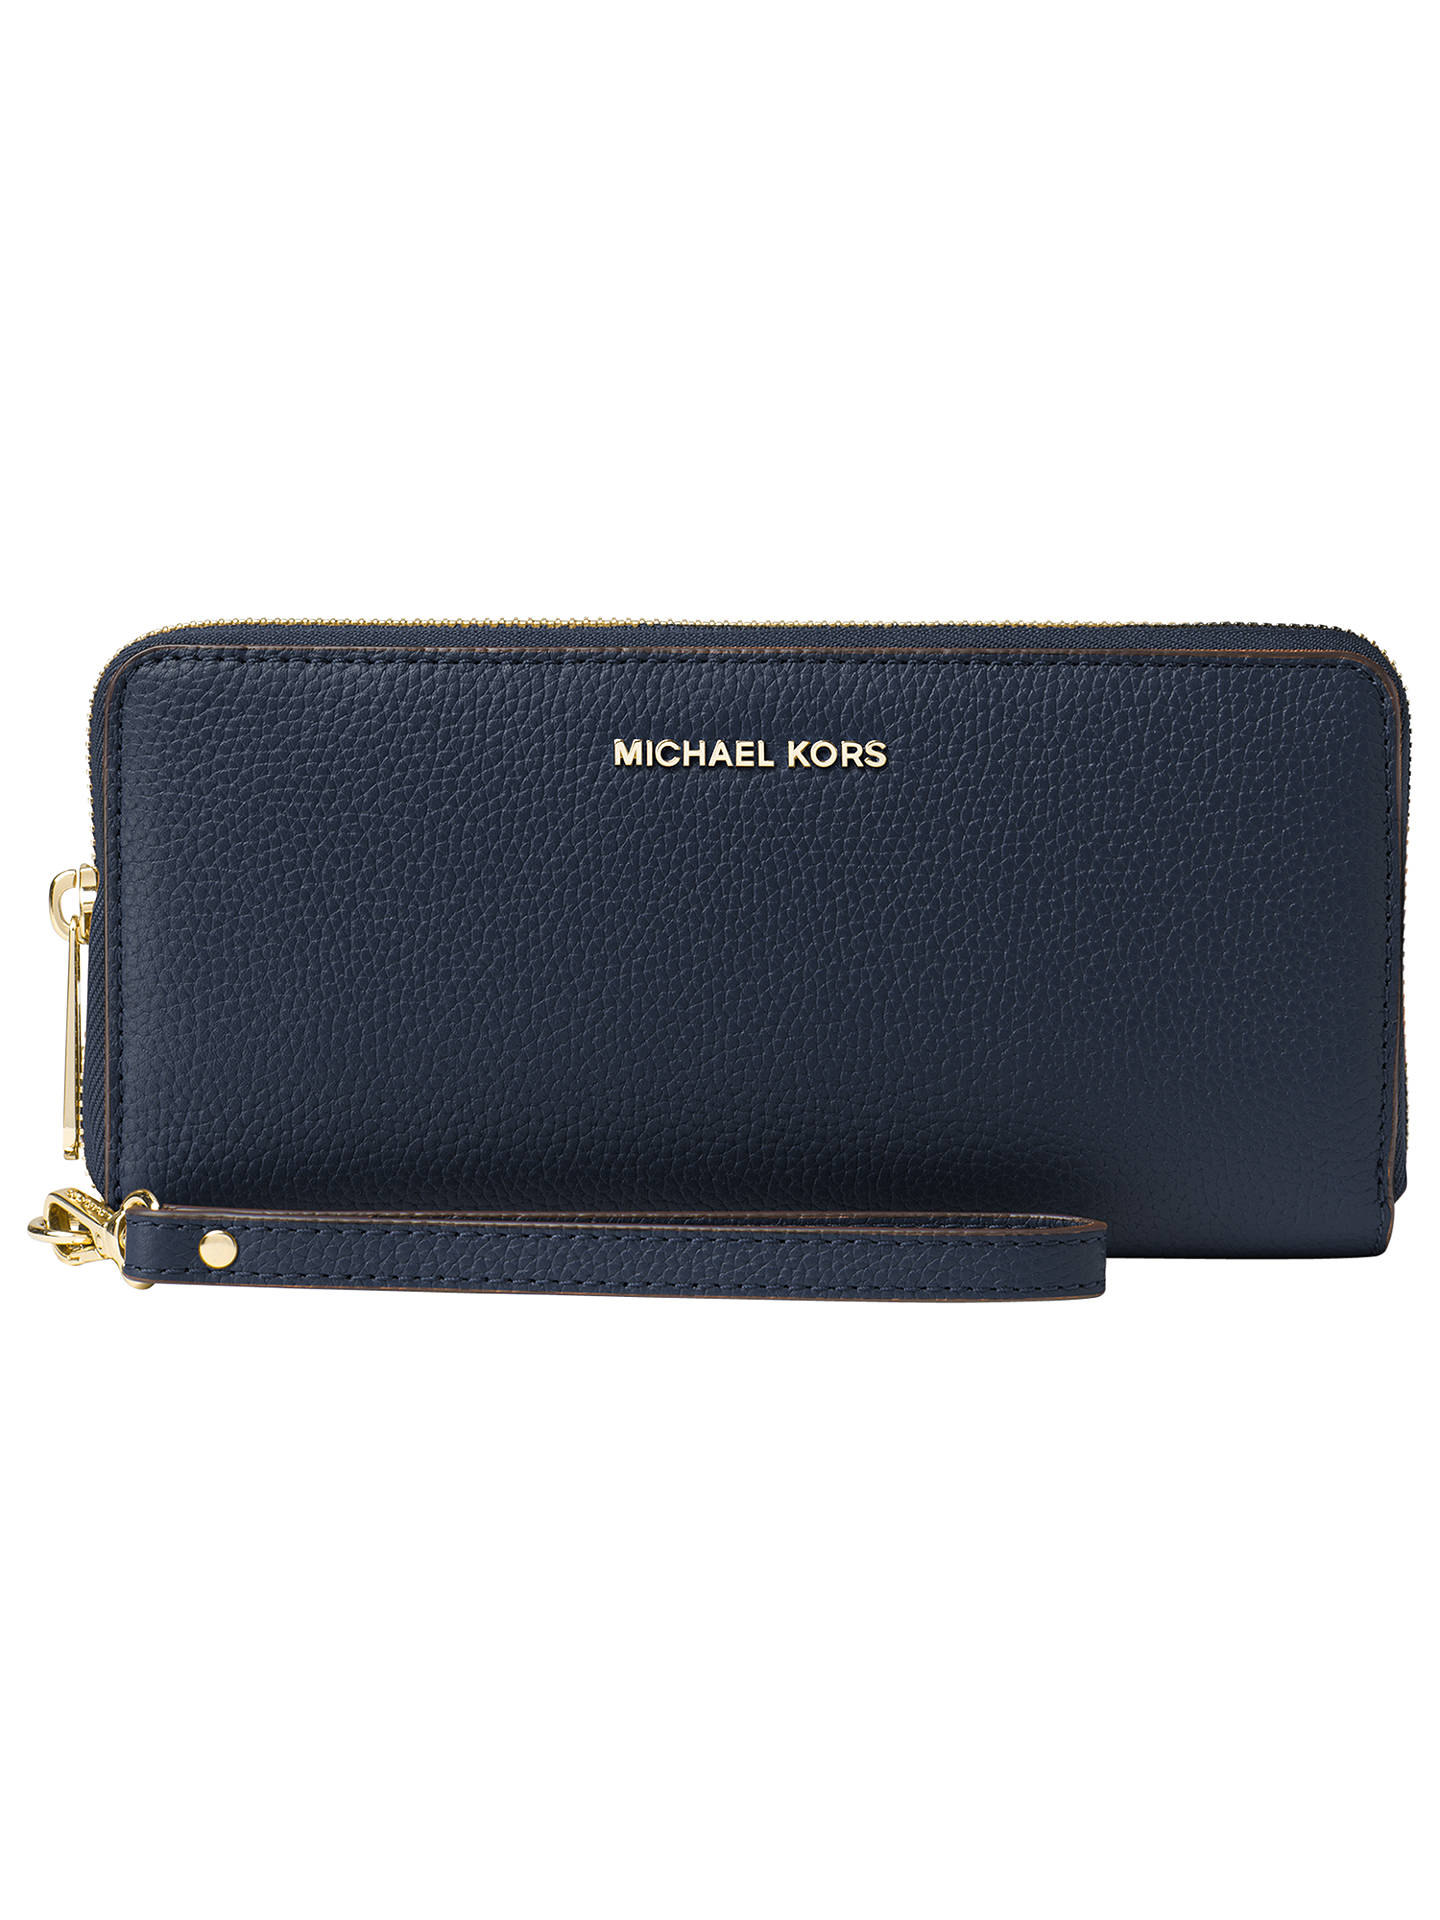 93f8fe8364a5c MICHAEL Michael Kors Mercer Travel Continental Leather Purse at John ...